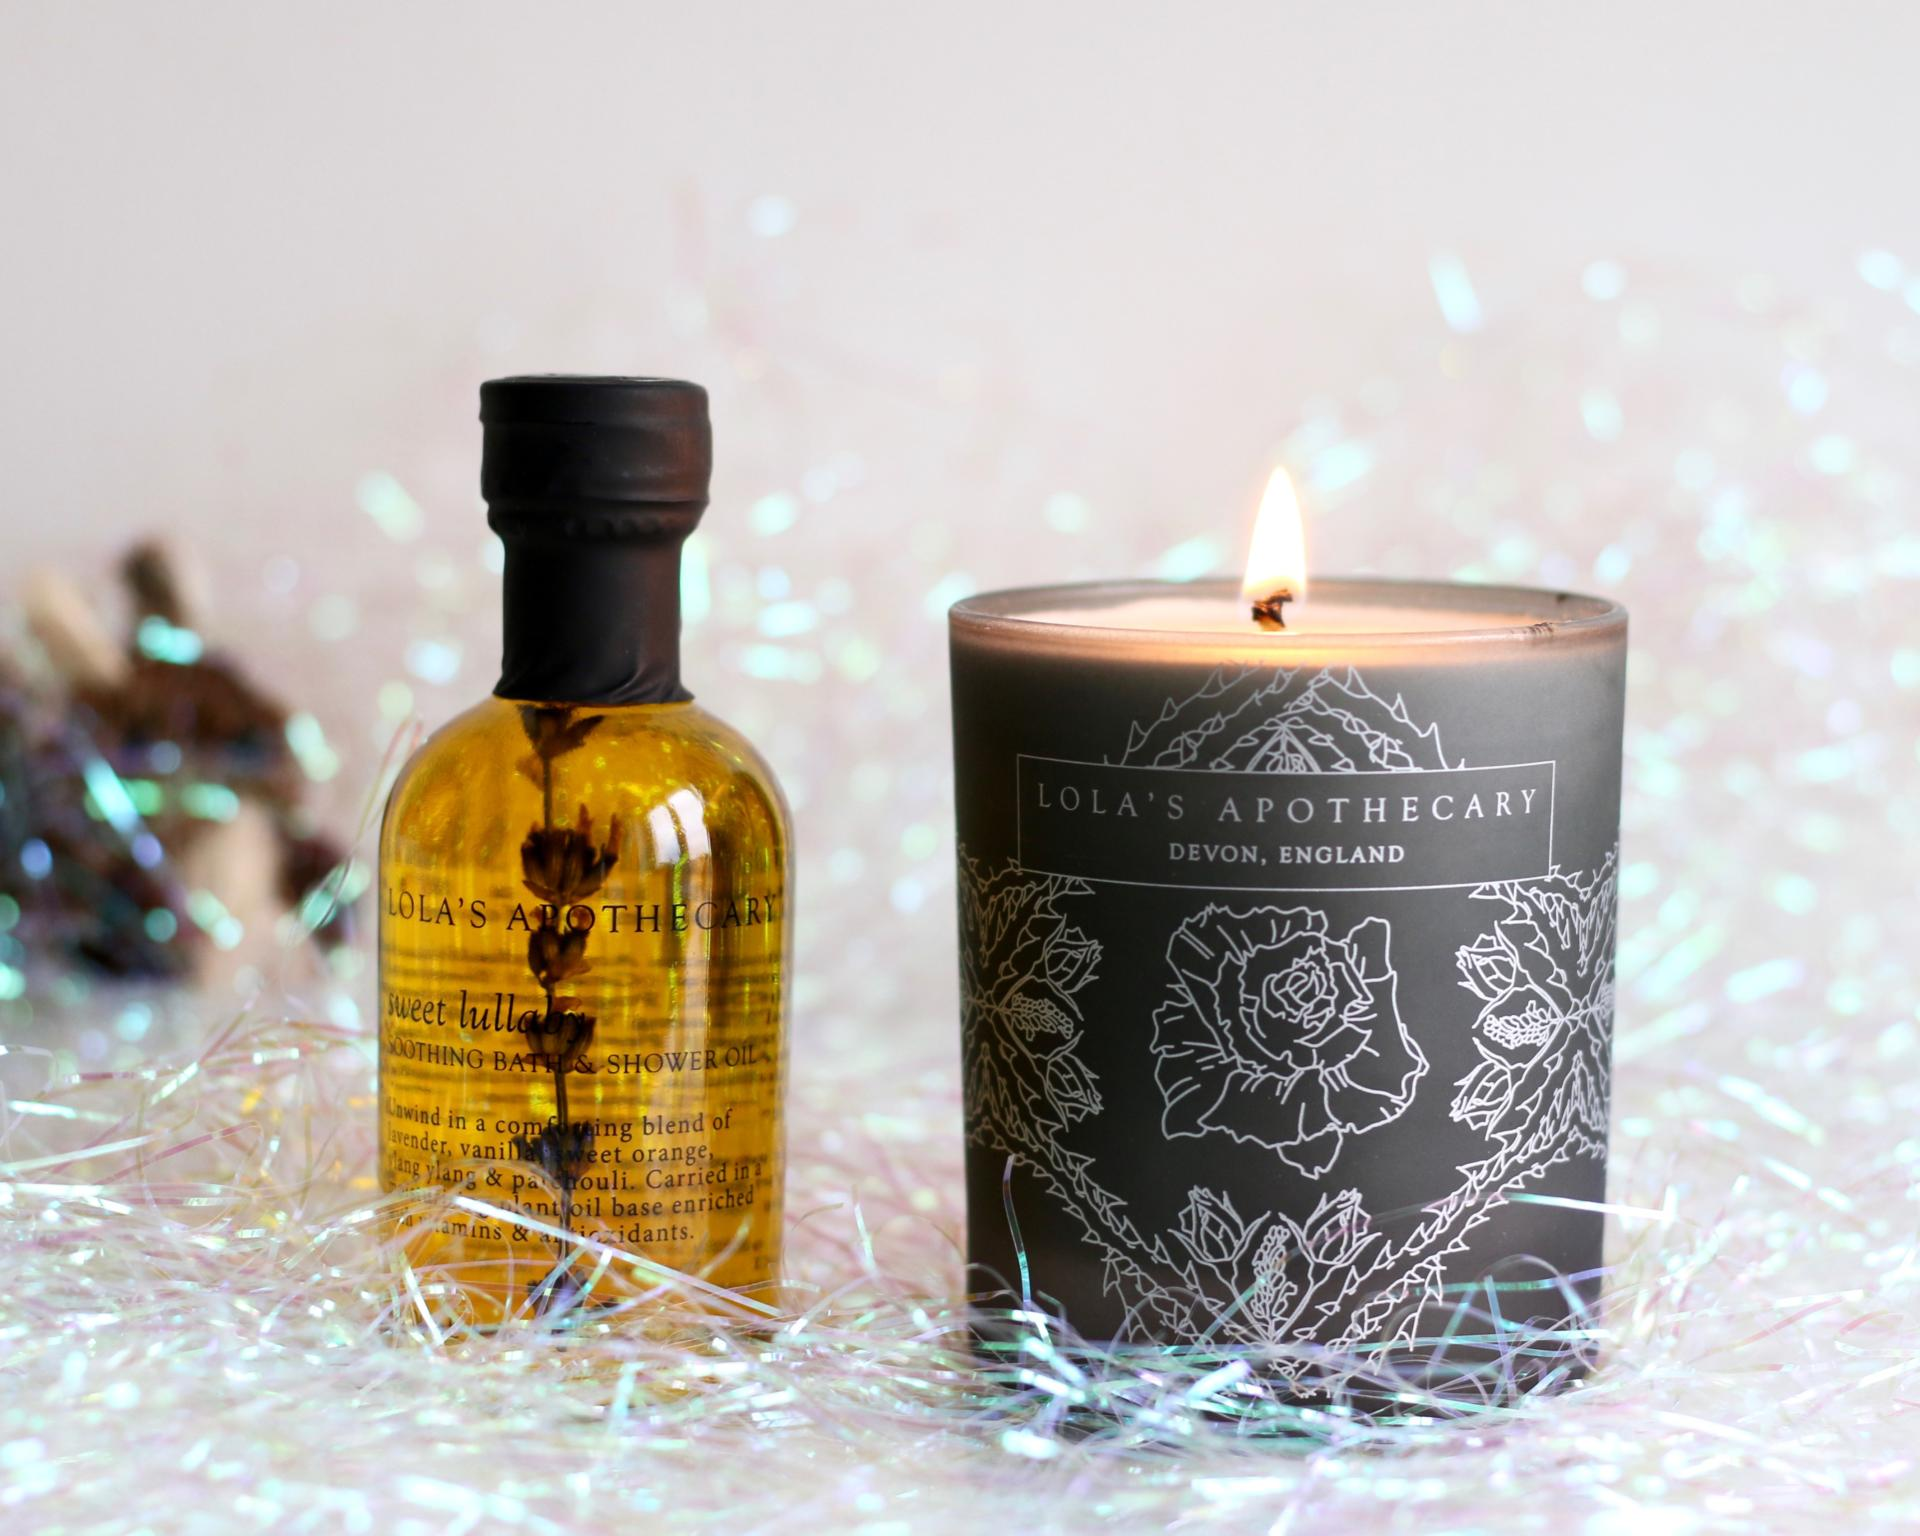 lolas-apothecary-lavender-oil-candle